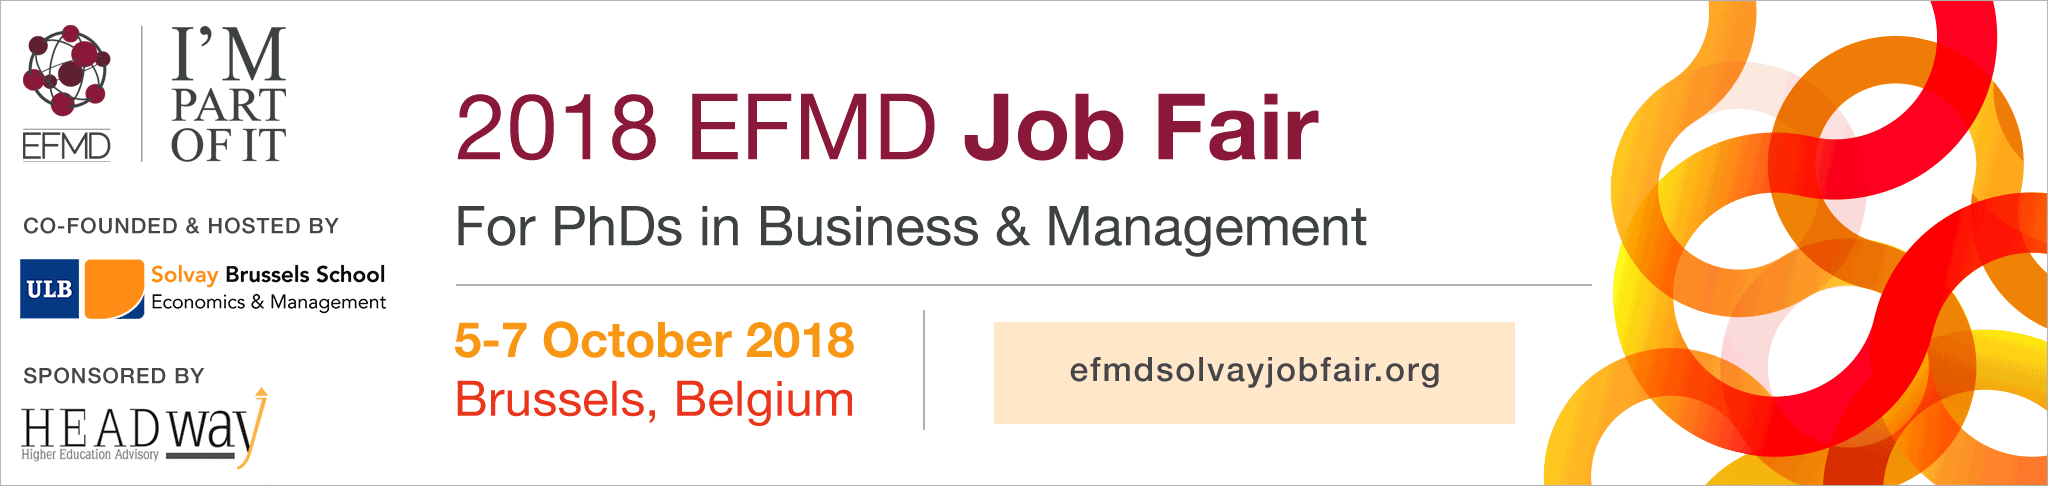 2018_EFMD-Solvay_PhD_Business_and_Management_Job_Fair_and_Conference-registration